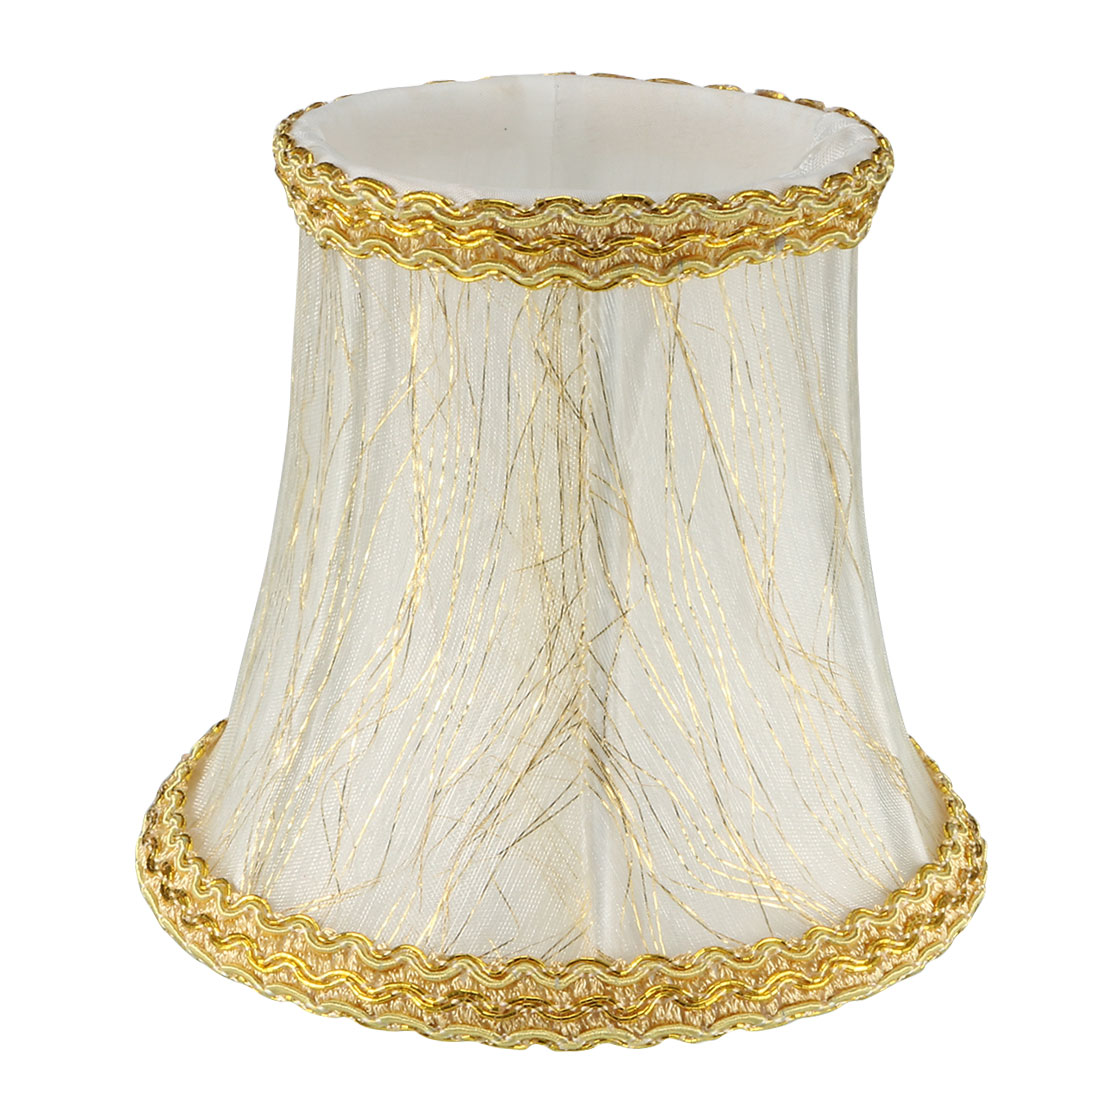 Wall Floor Shades 84mm x 123mm x 108mm Chandelier Lamp Shade Fabric-Covered